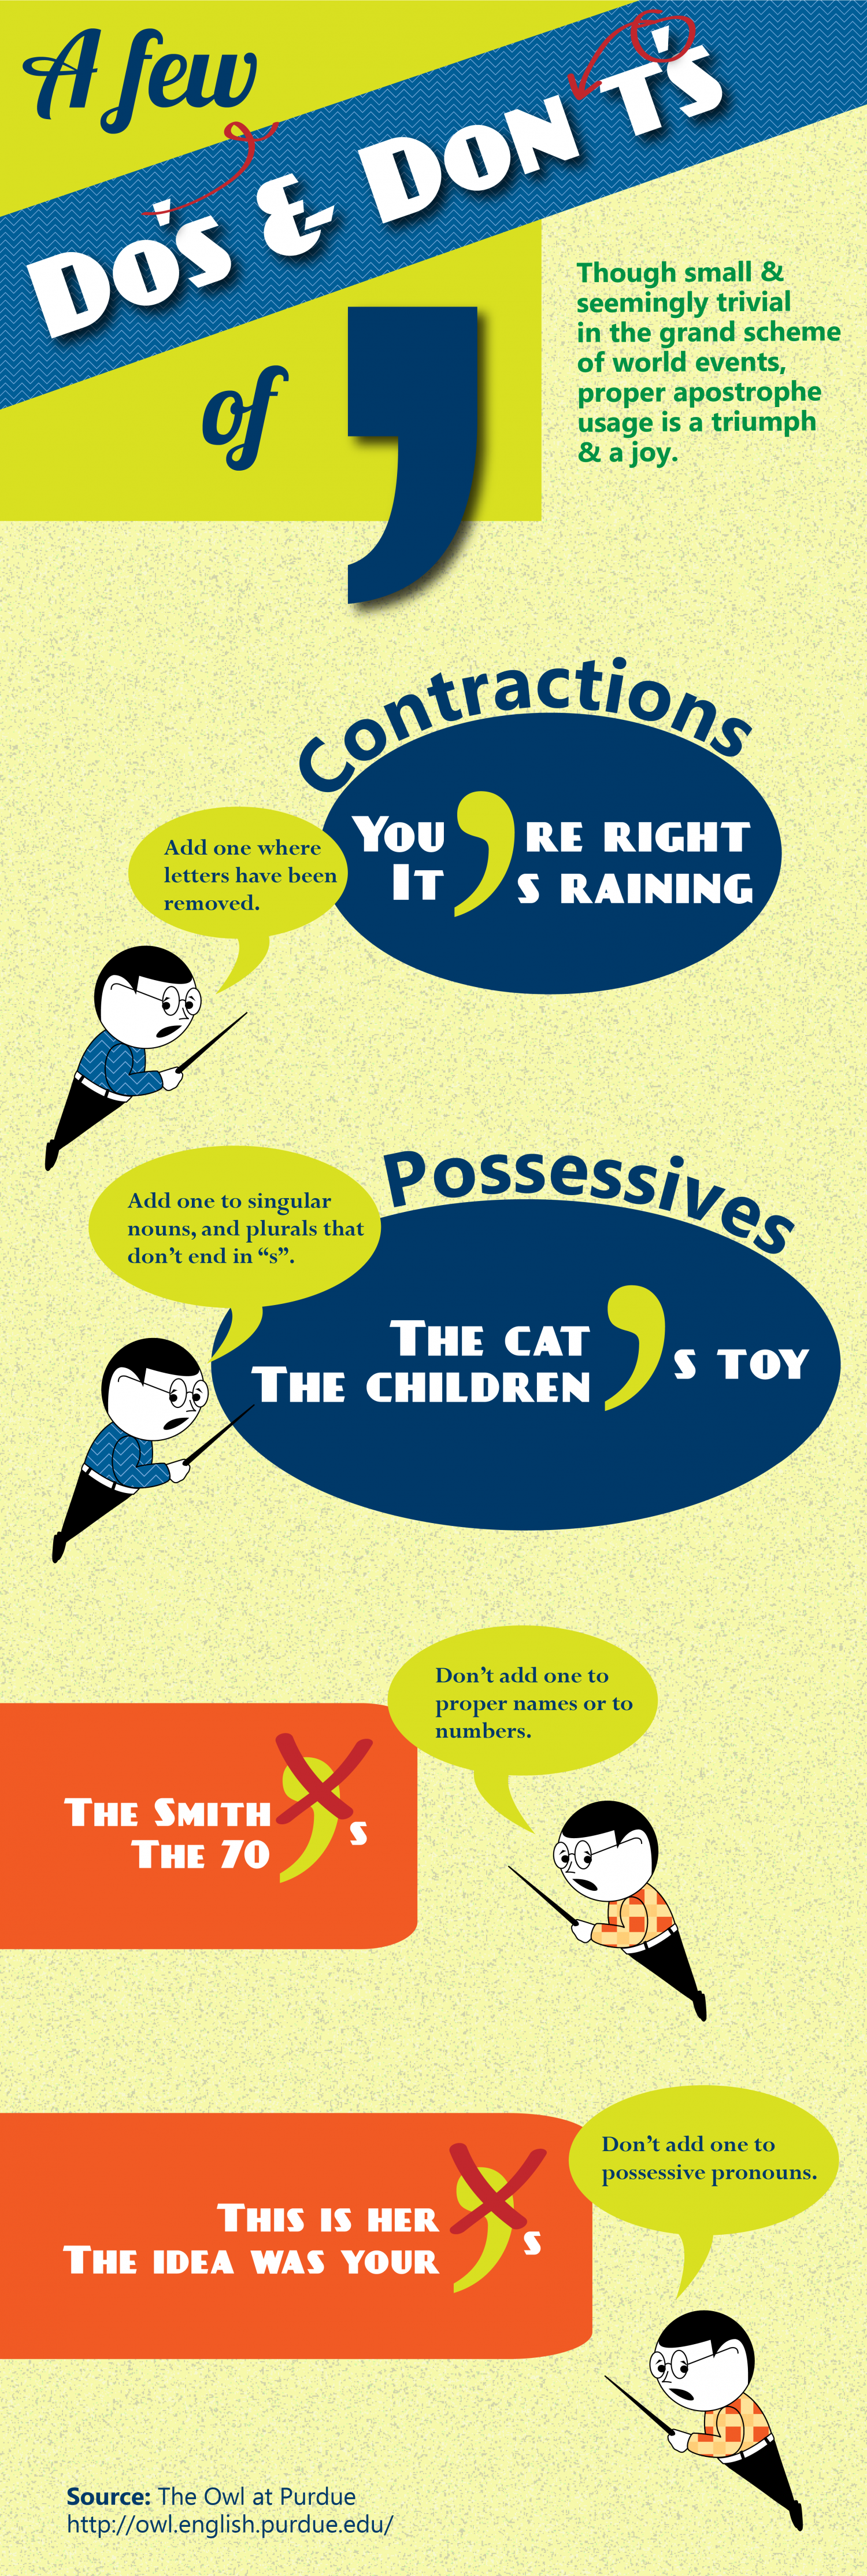 The Dos and Don'ts of the Apostrophe Infographic